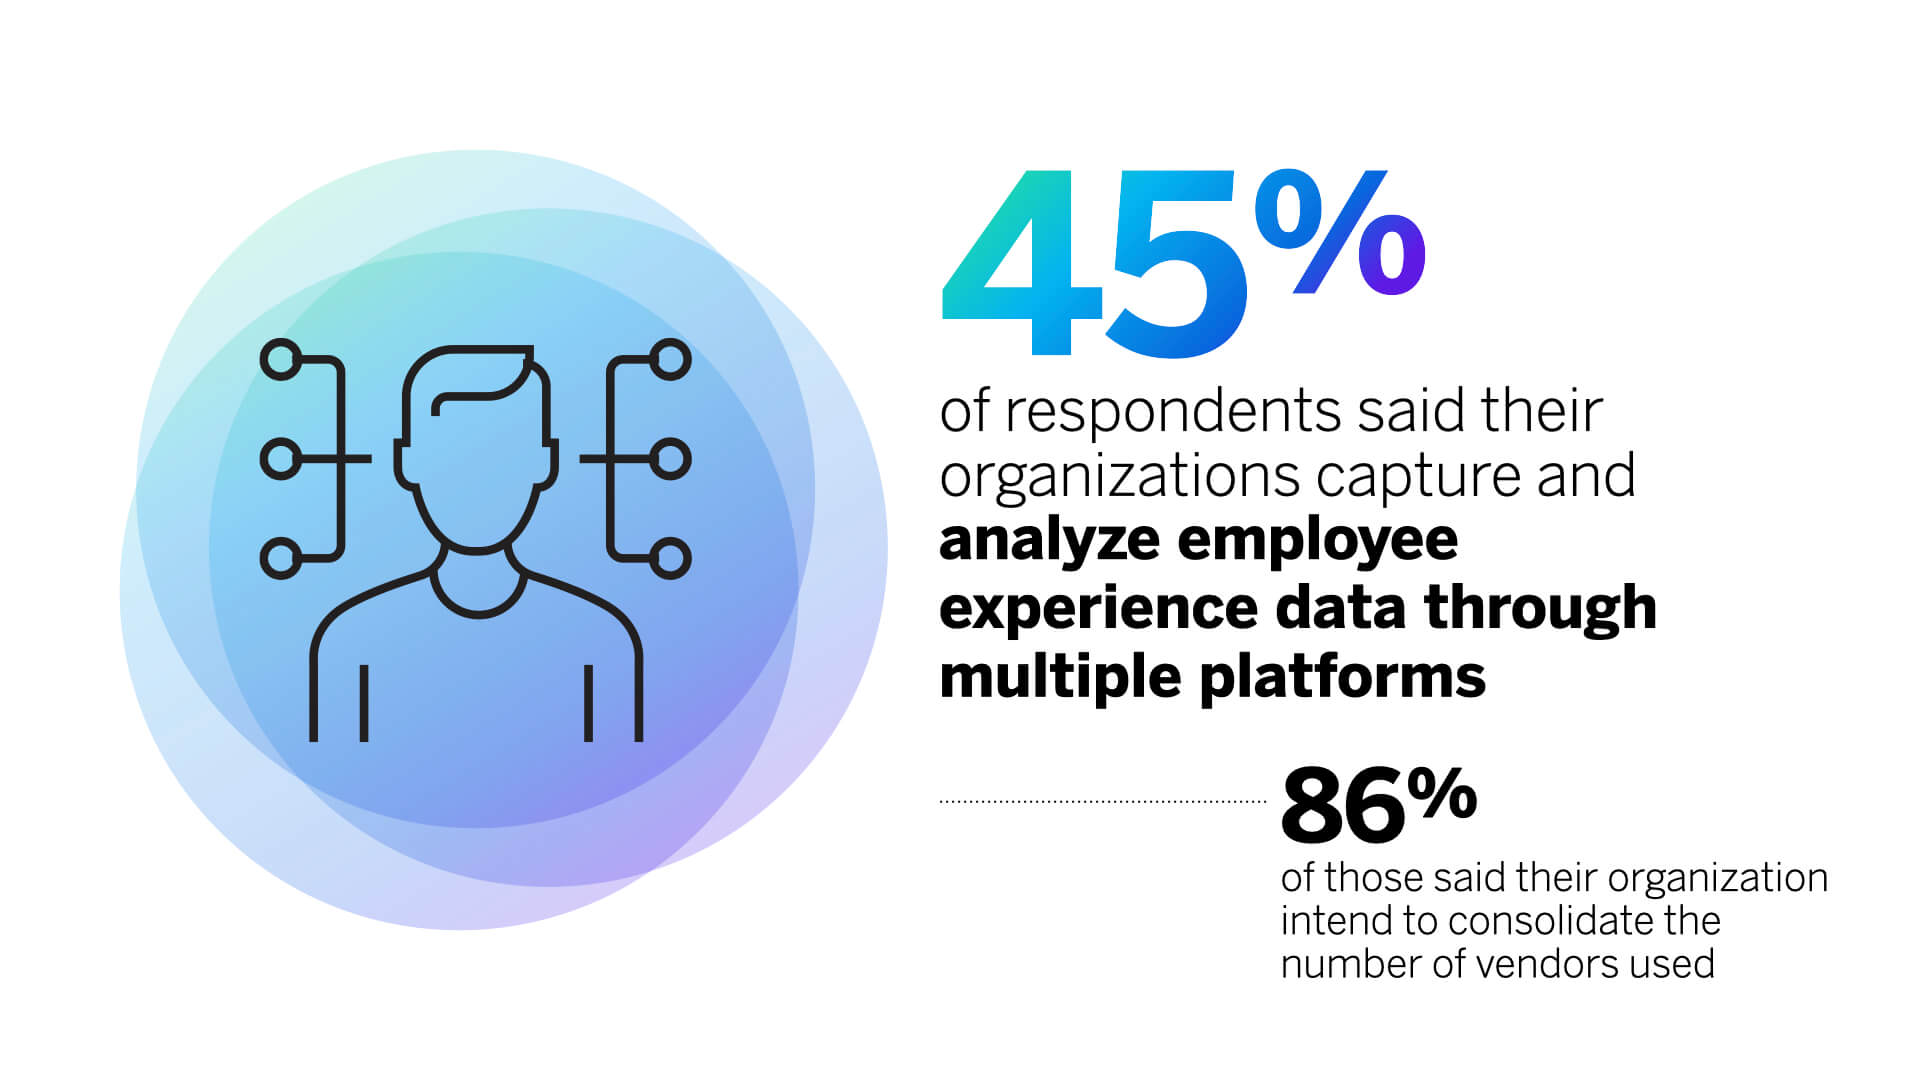 45% of respondents' organizations capture employee experience data through multiple platforms